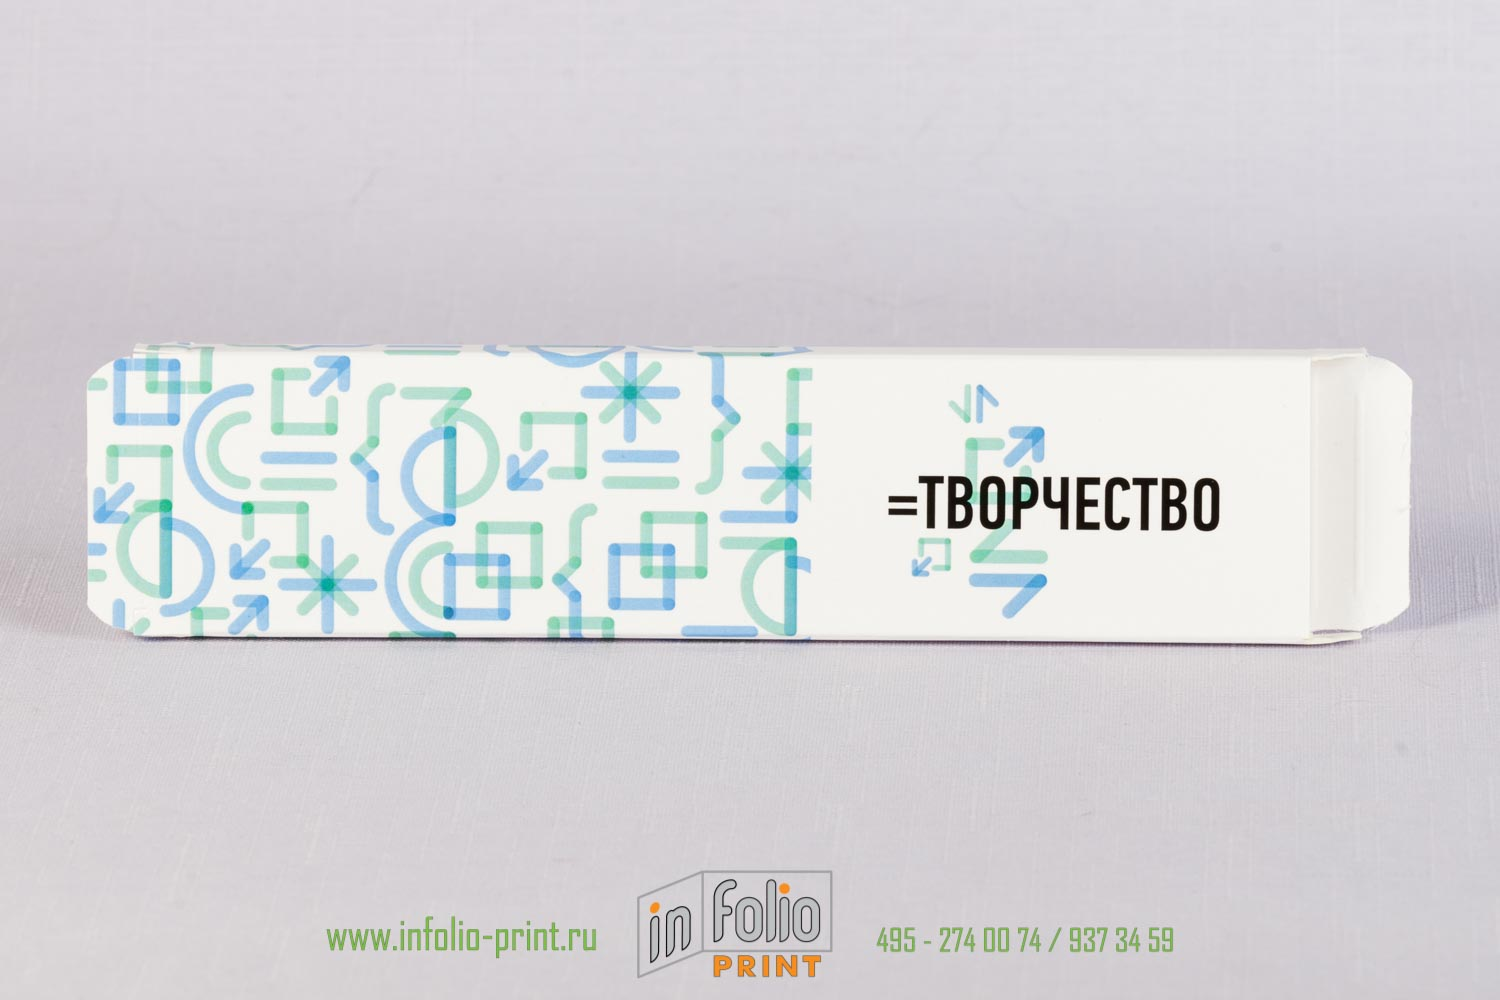 https://www.infolio-print.ru/images/products_gallery_images/B-98_box_for_pencil_tvorchestvo.JPG